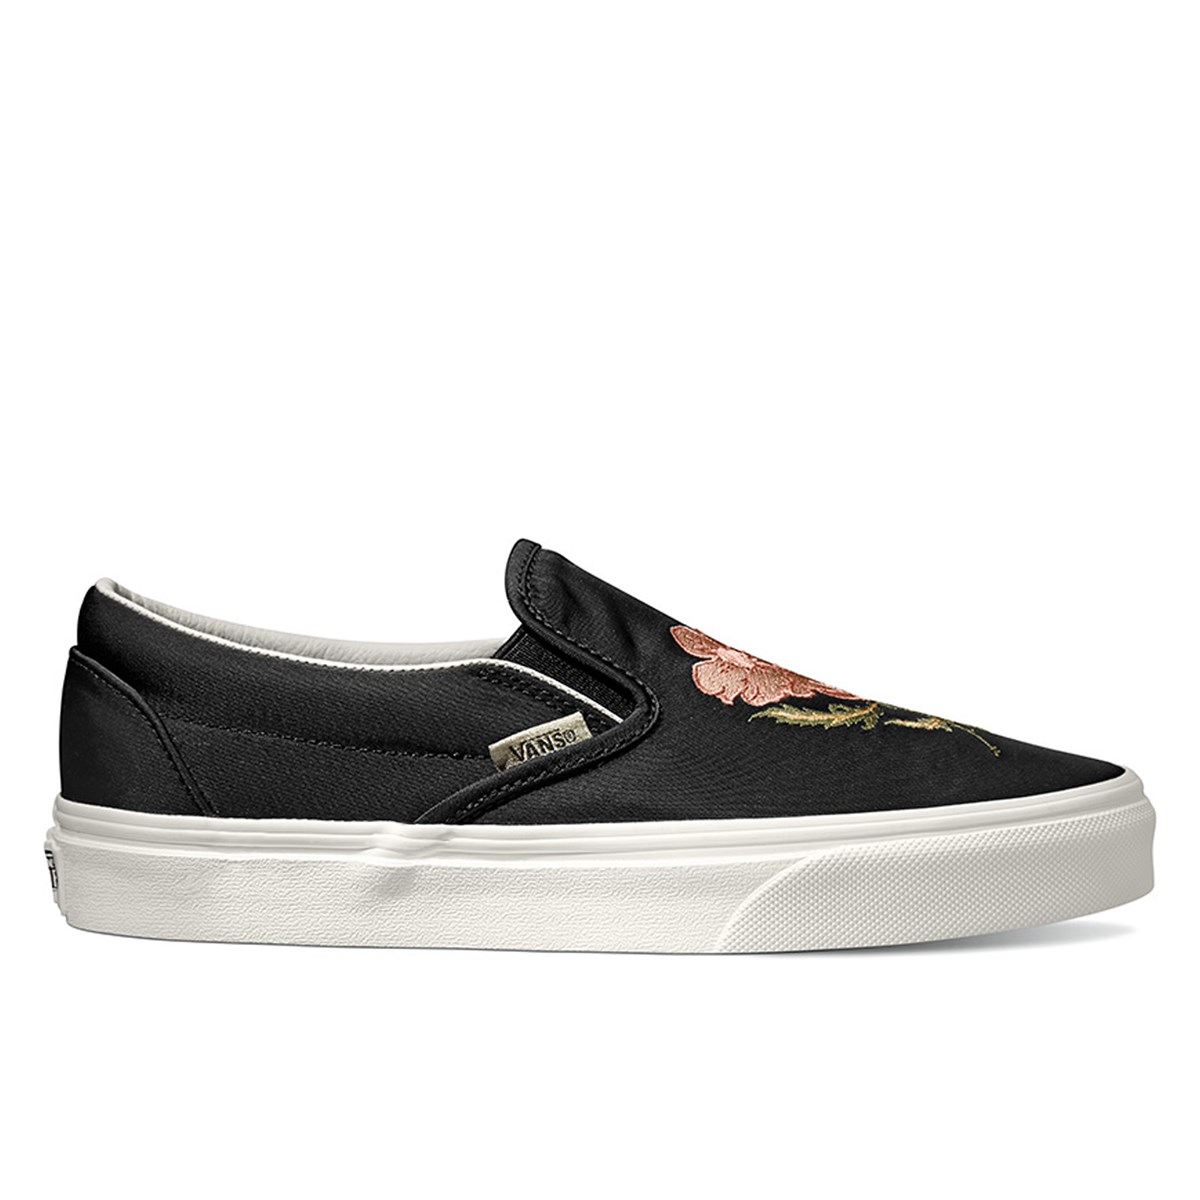 Women's Classic California Black Slip-On